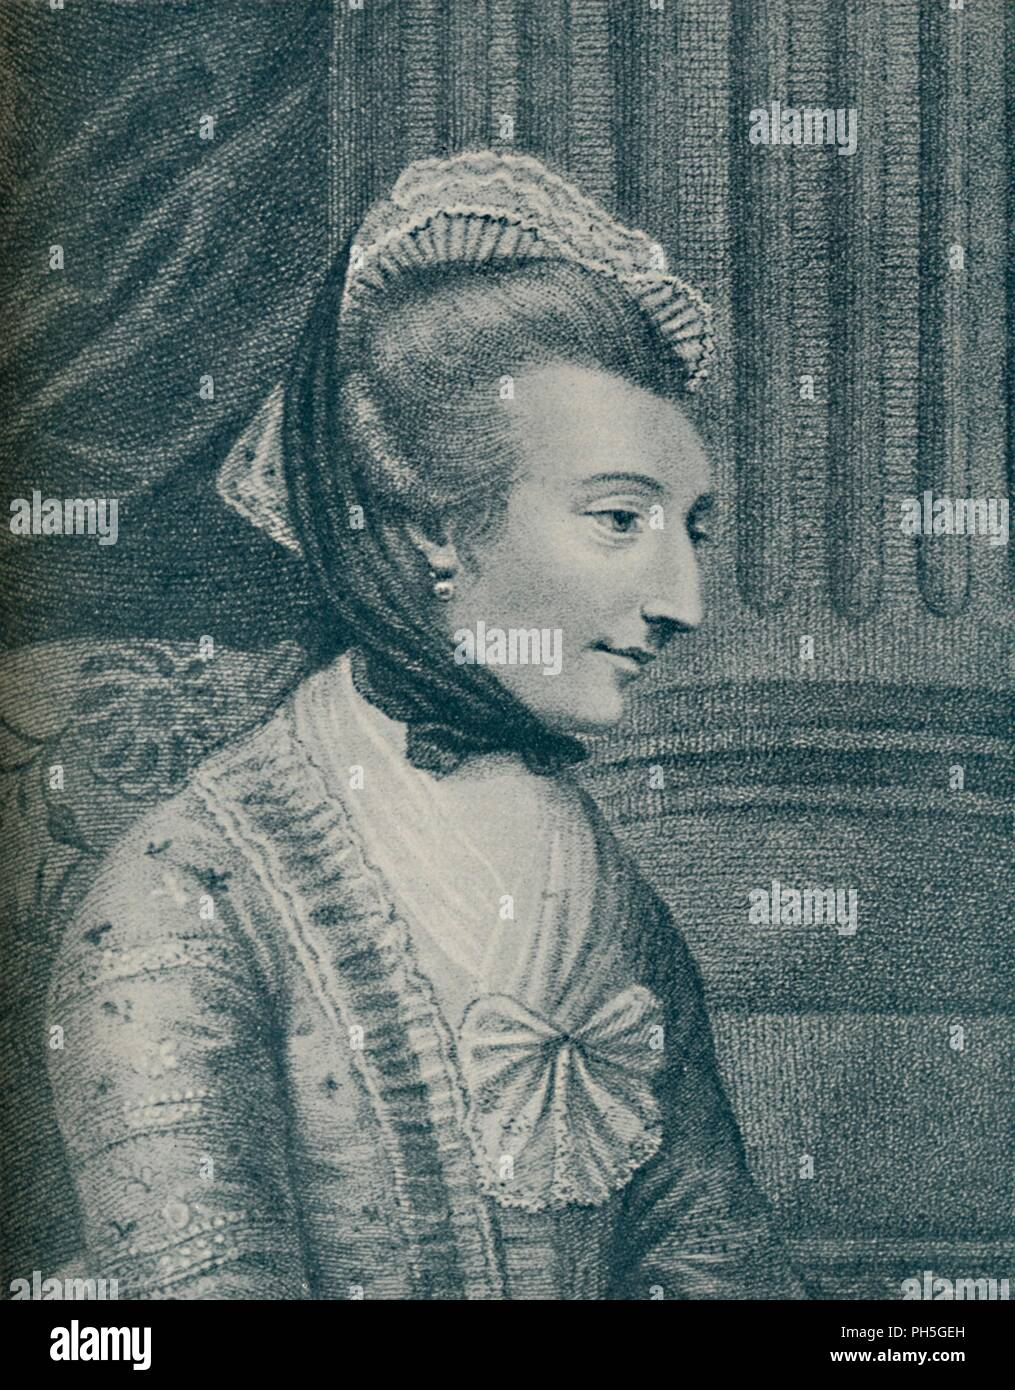 'Mrs. Elizabeth Montague (b. 1720, d. 1800)', 1907. Elizabeth Montagu (1718-1800), was a British social reformer, patron of the arts, salonist, literary critic, and writer who helped organize and lead the Blue Stockings Society. From The Life of Samuel Johnson, Vol. II by James Boswell. [Sir Isaac Pitman & Sons, Ltd., London, 1907] - Stock Image